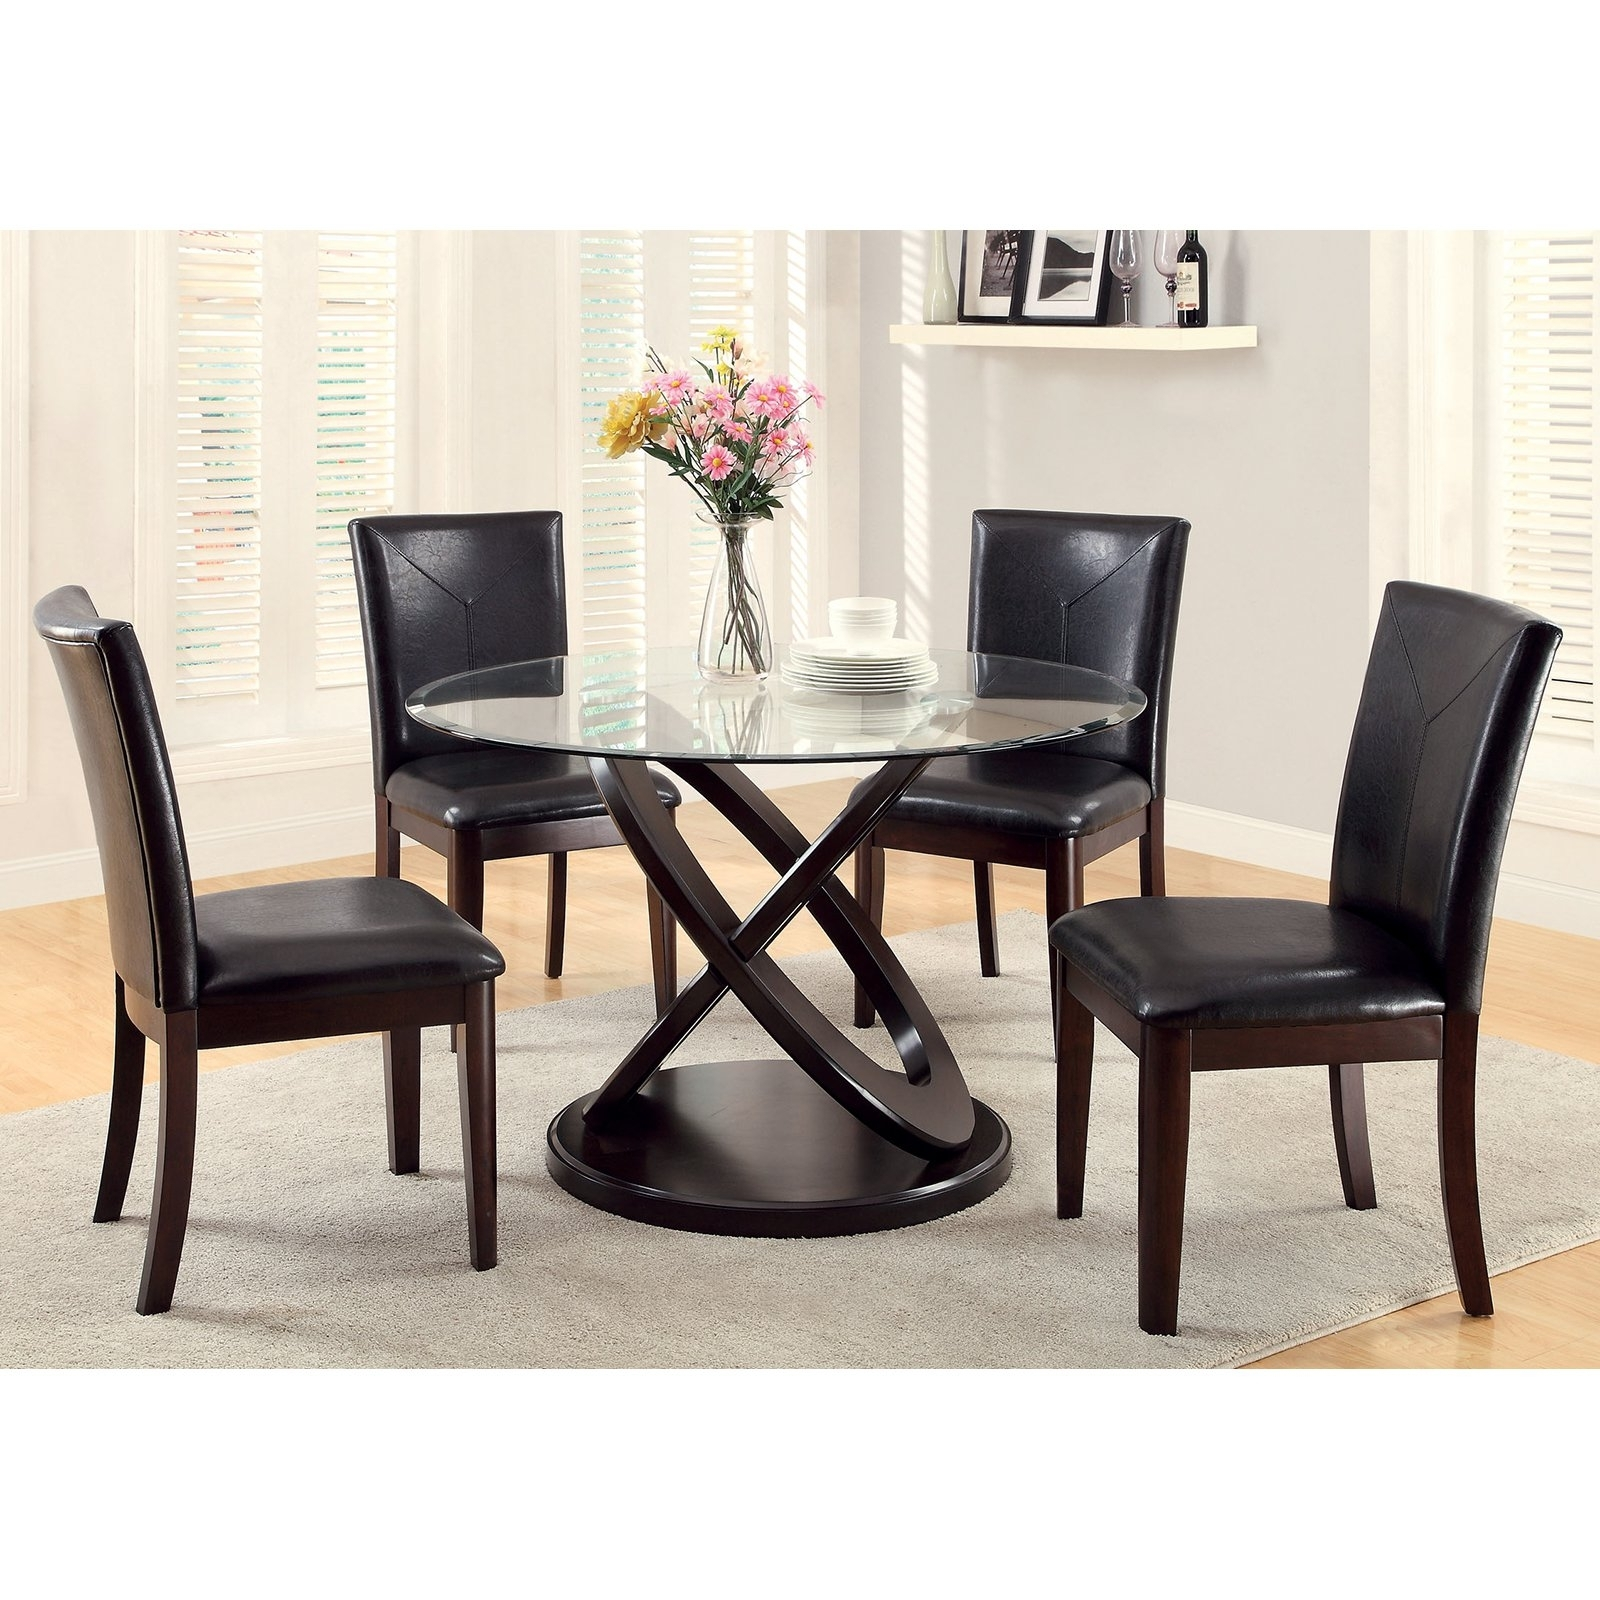 Latest Dining Tables Sets Intended For Furniture Of America Ollivander 5 Piece Glass Top Dining Table Set (View 16 of 25)